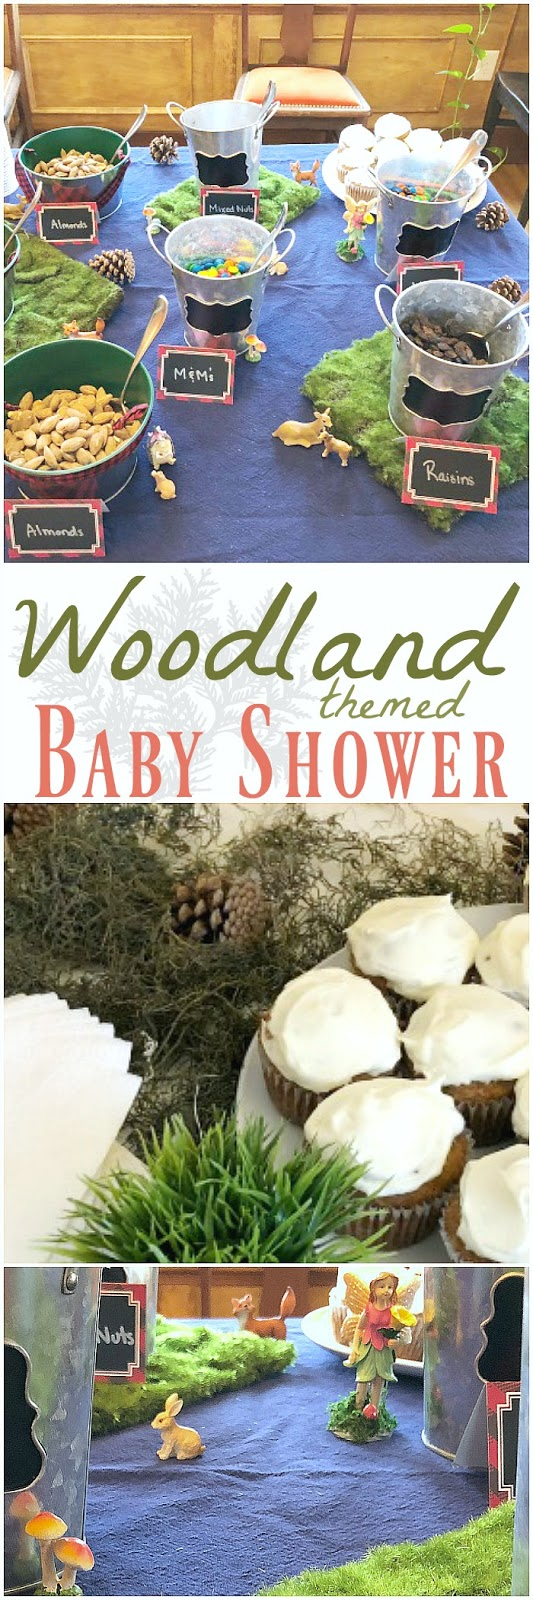 baby shower theme, coed baby shower ideas, gender neutral baby shower theme, modern baby shower